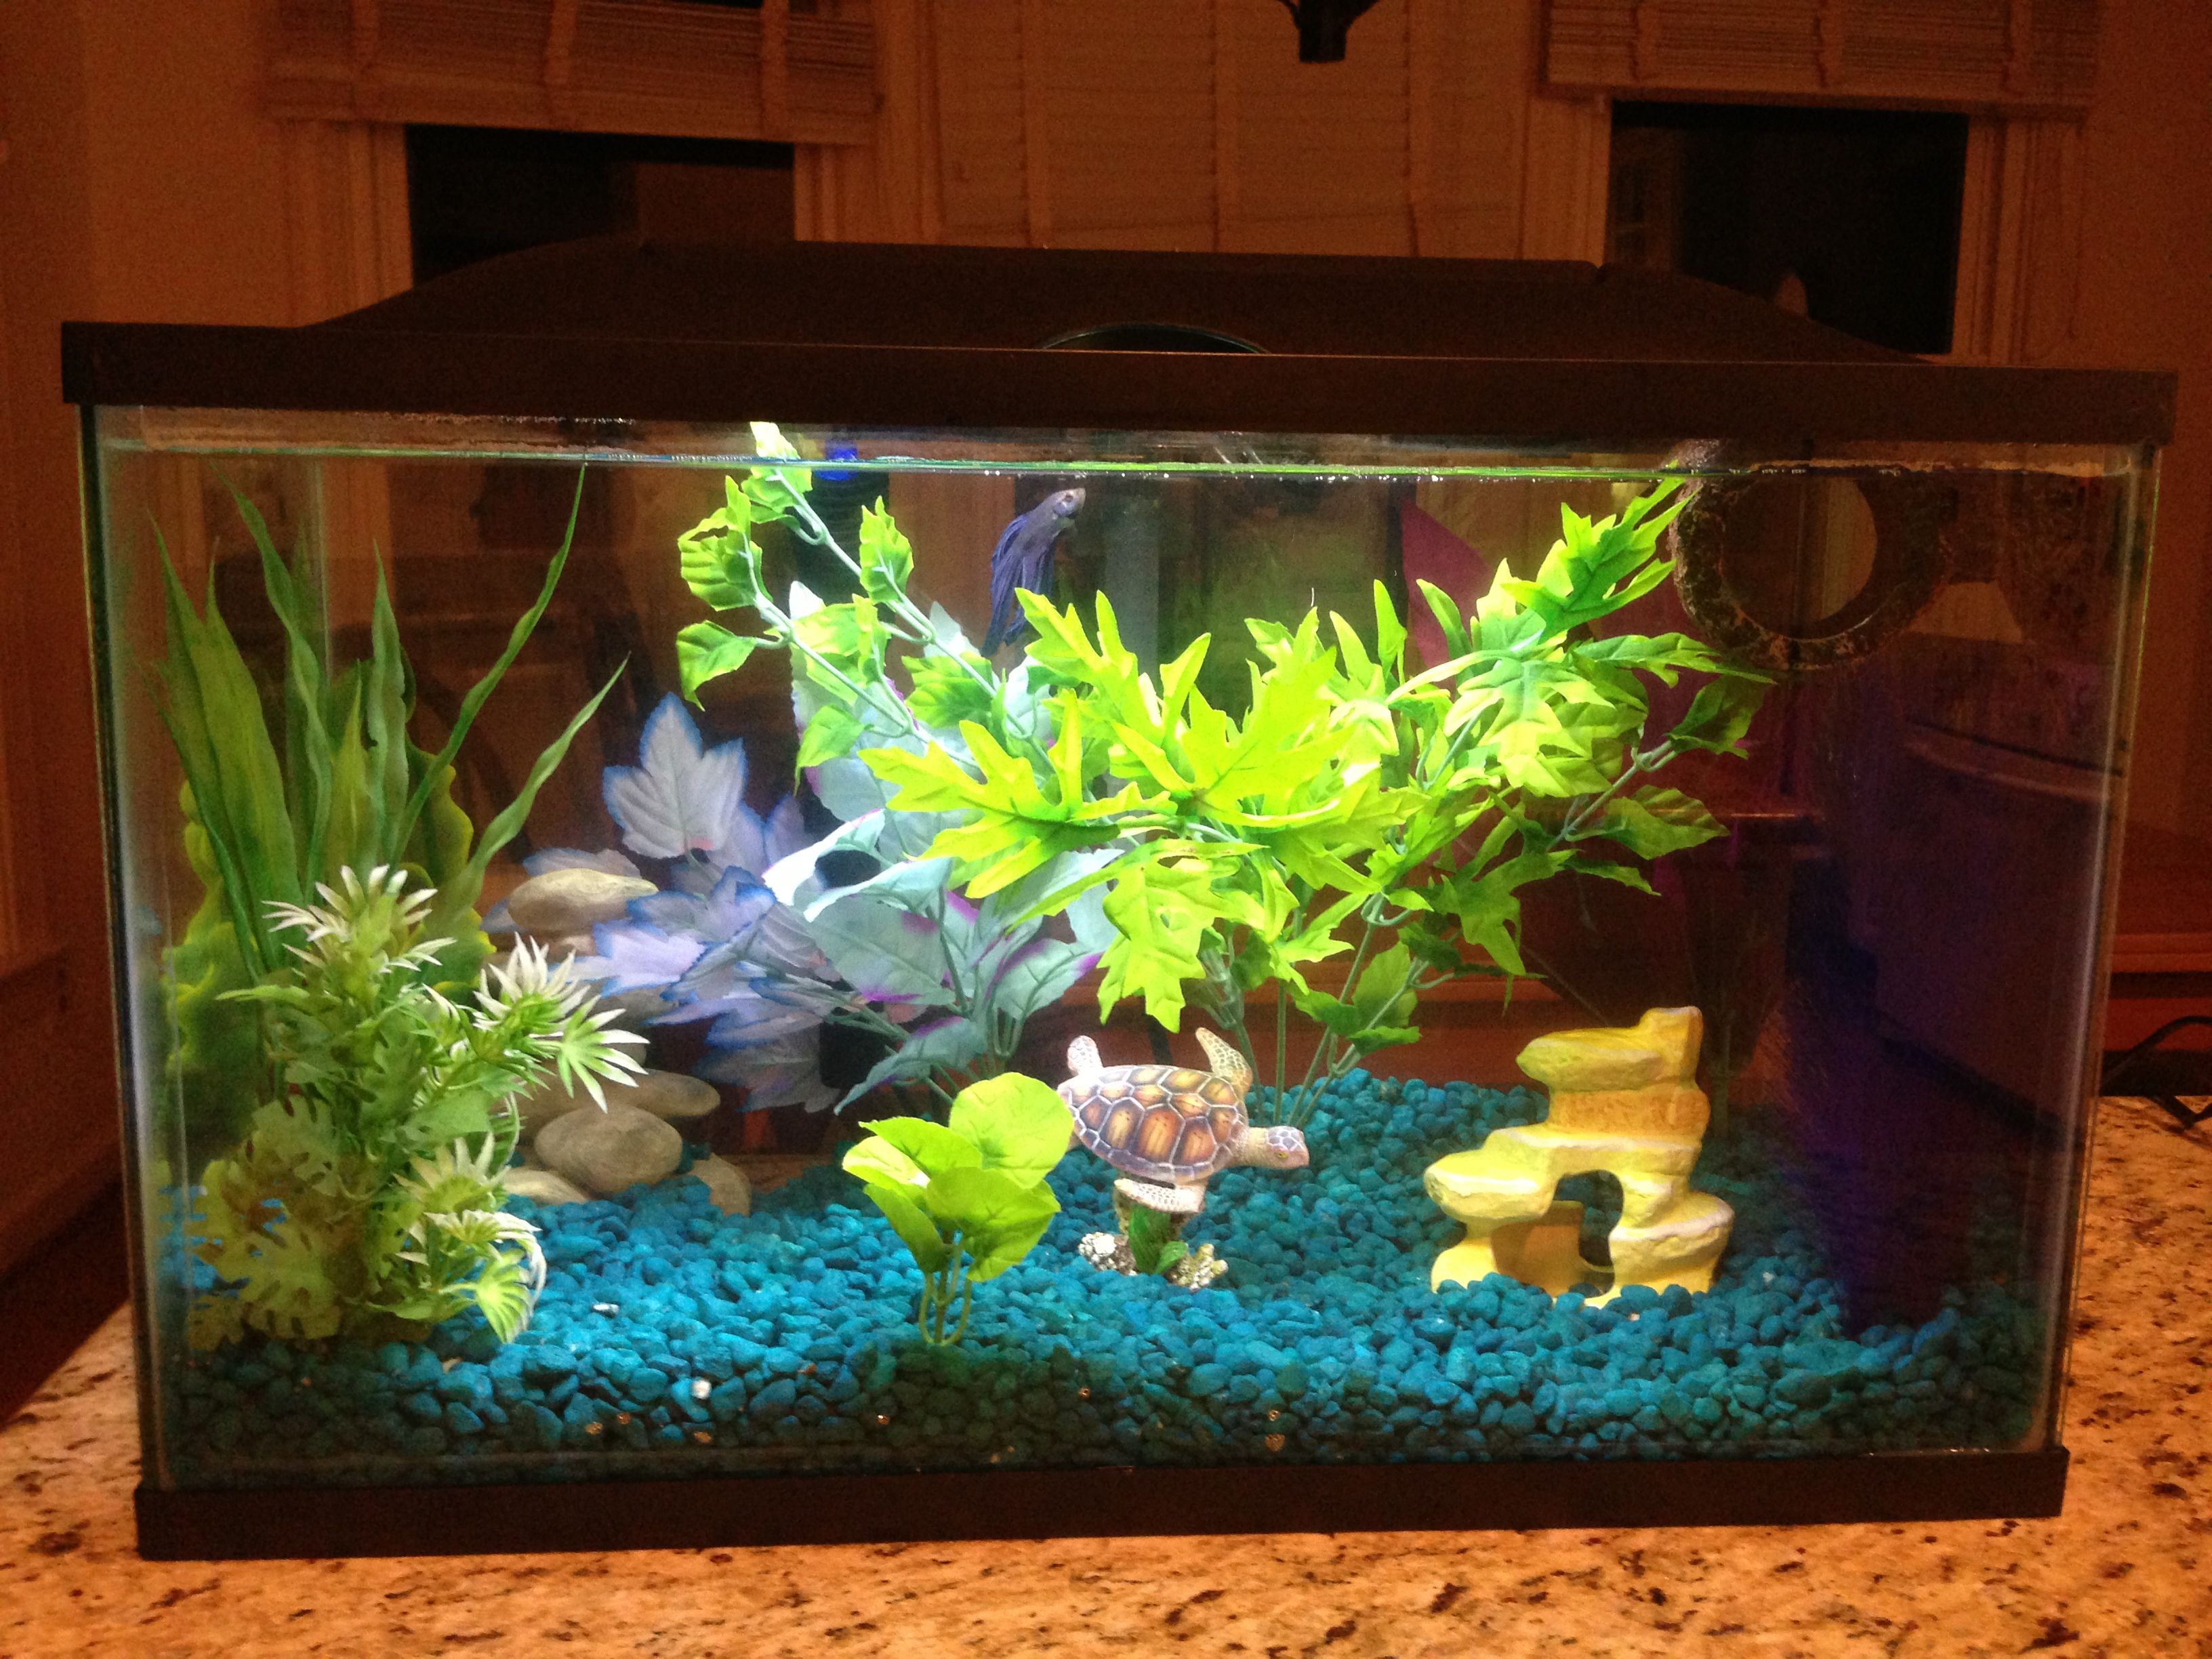 Fish tank decorations 10 gallon diy betta fish tank for 10 gallon fish tanks